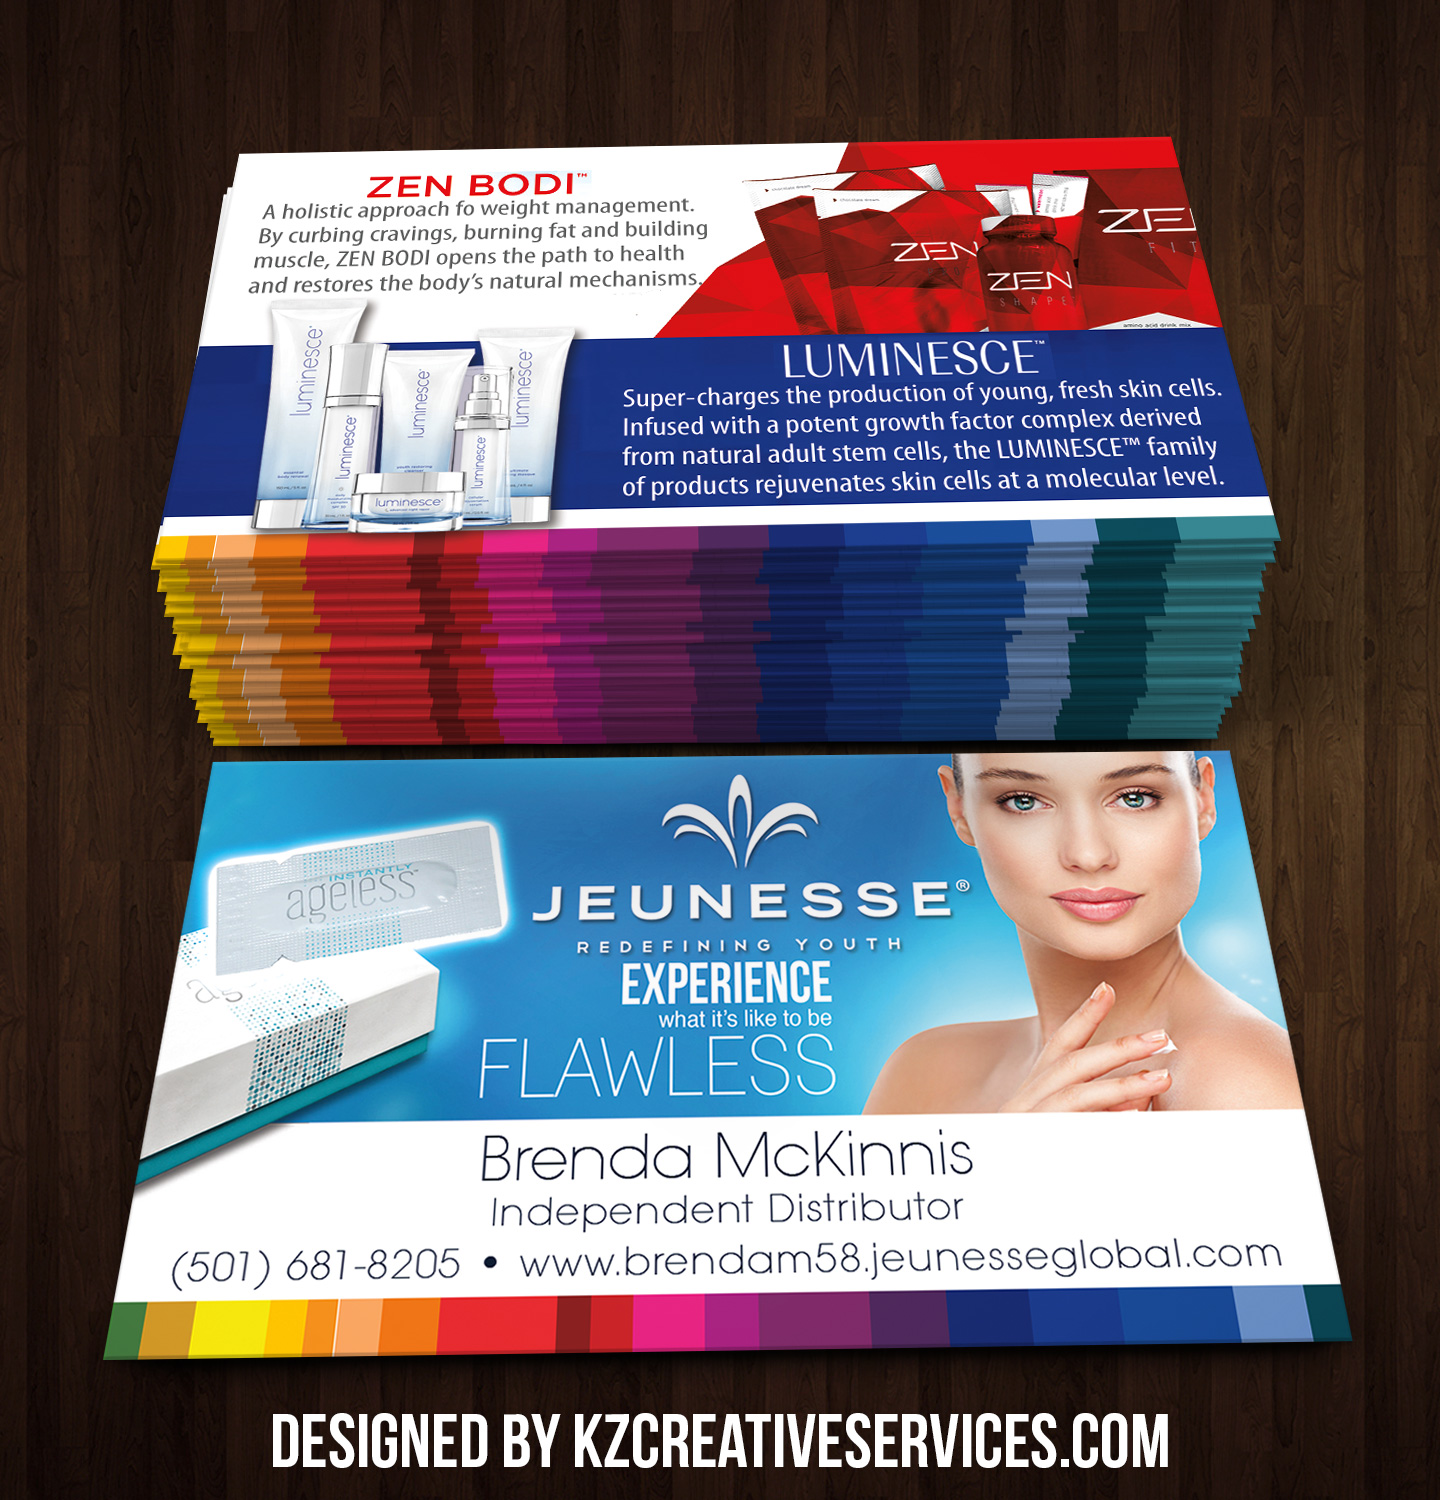 Jeunesse Business Cards style 6 · KZ Creative Services · line